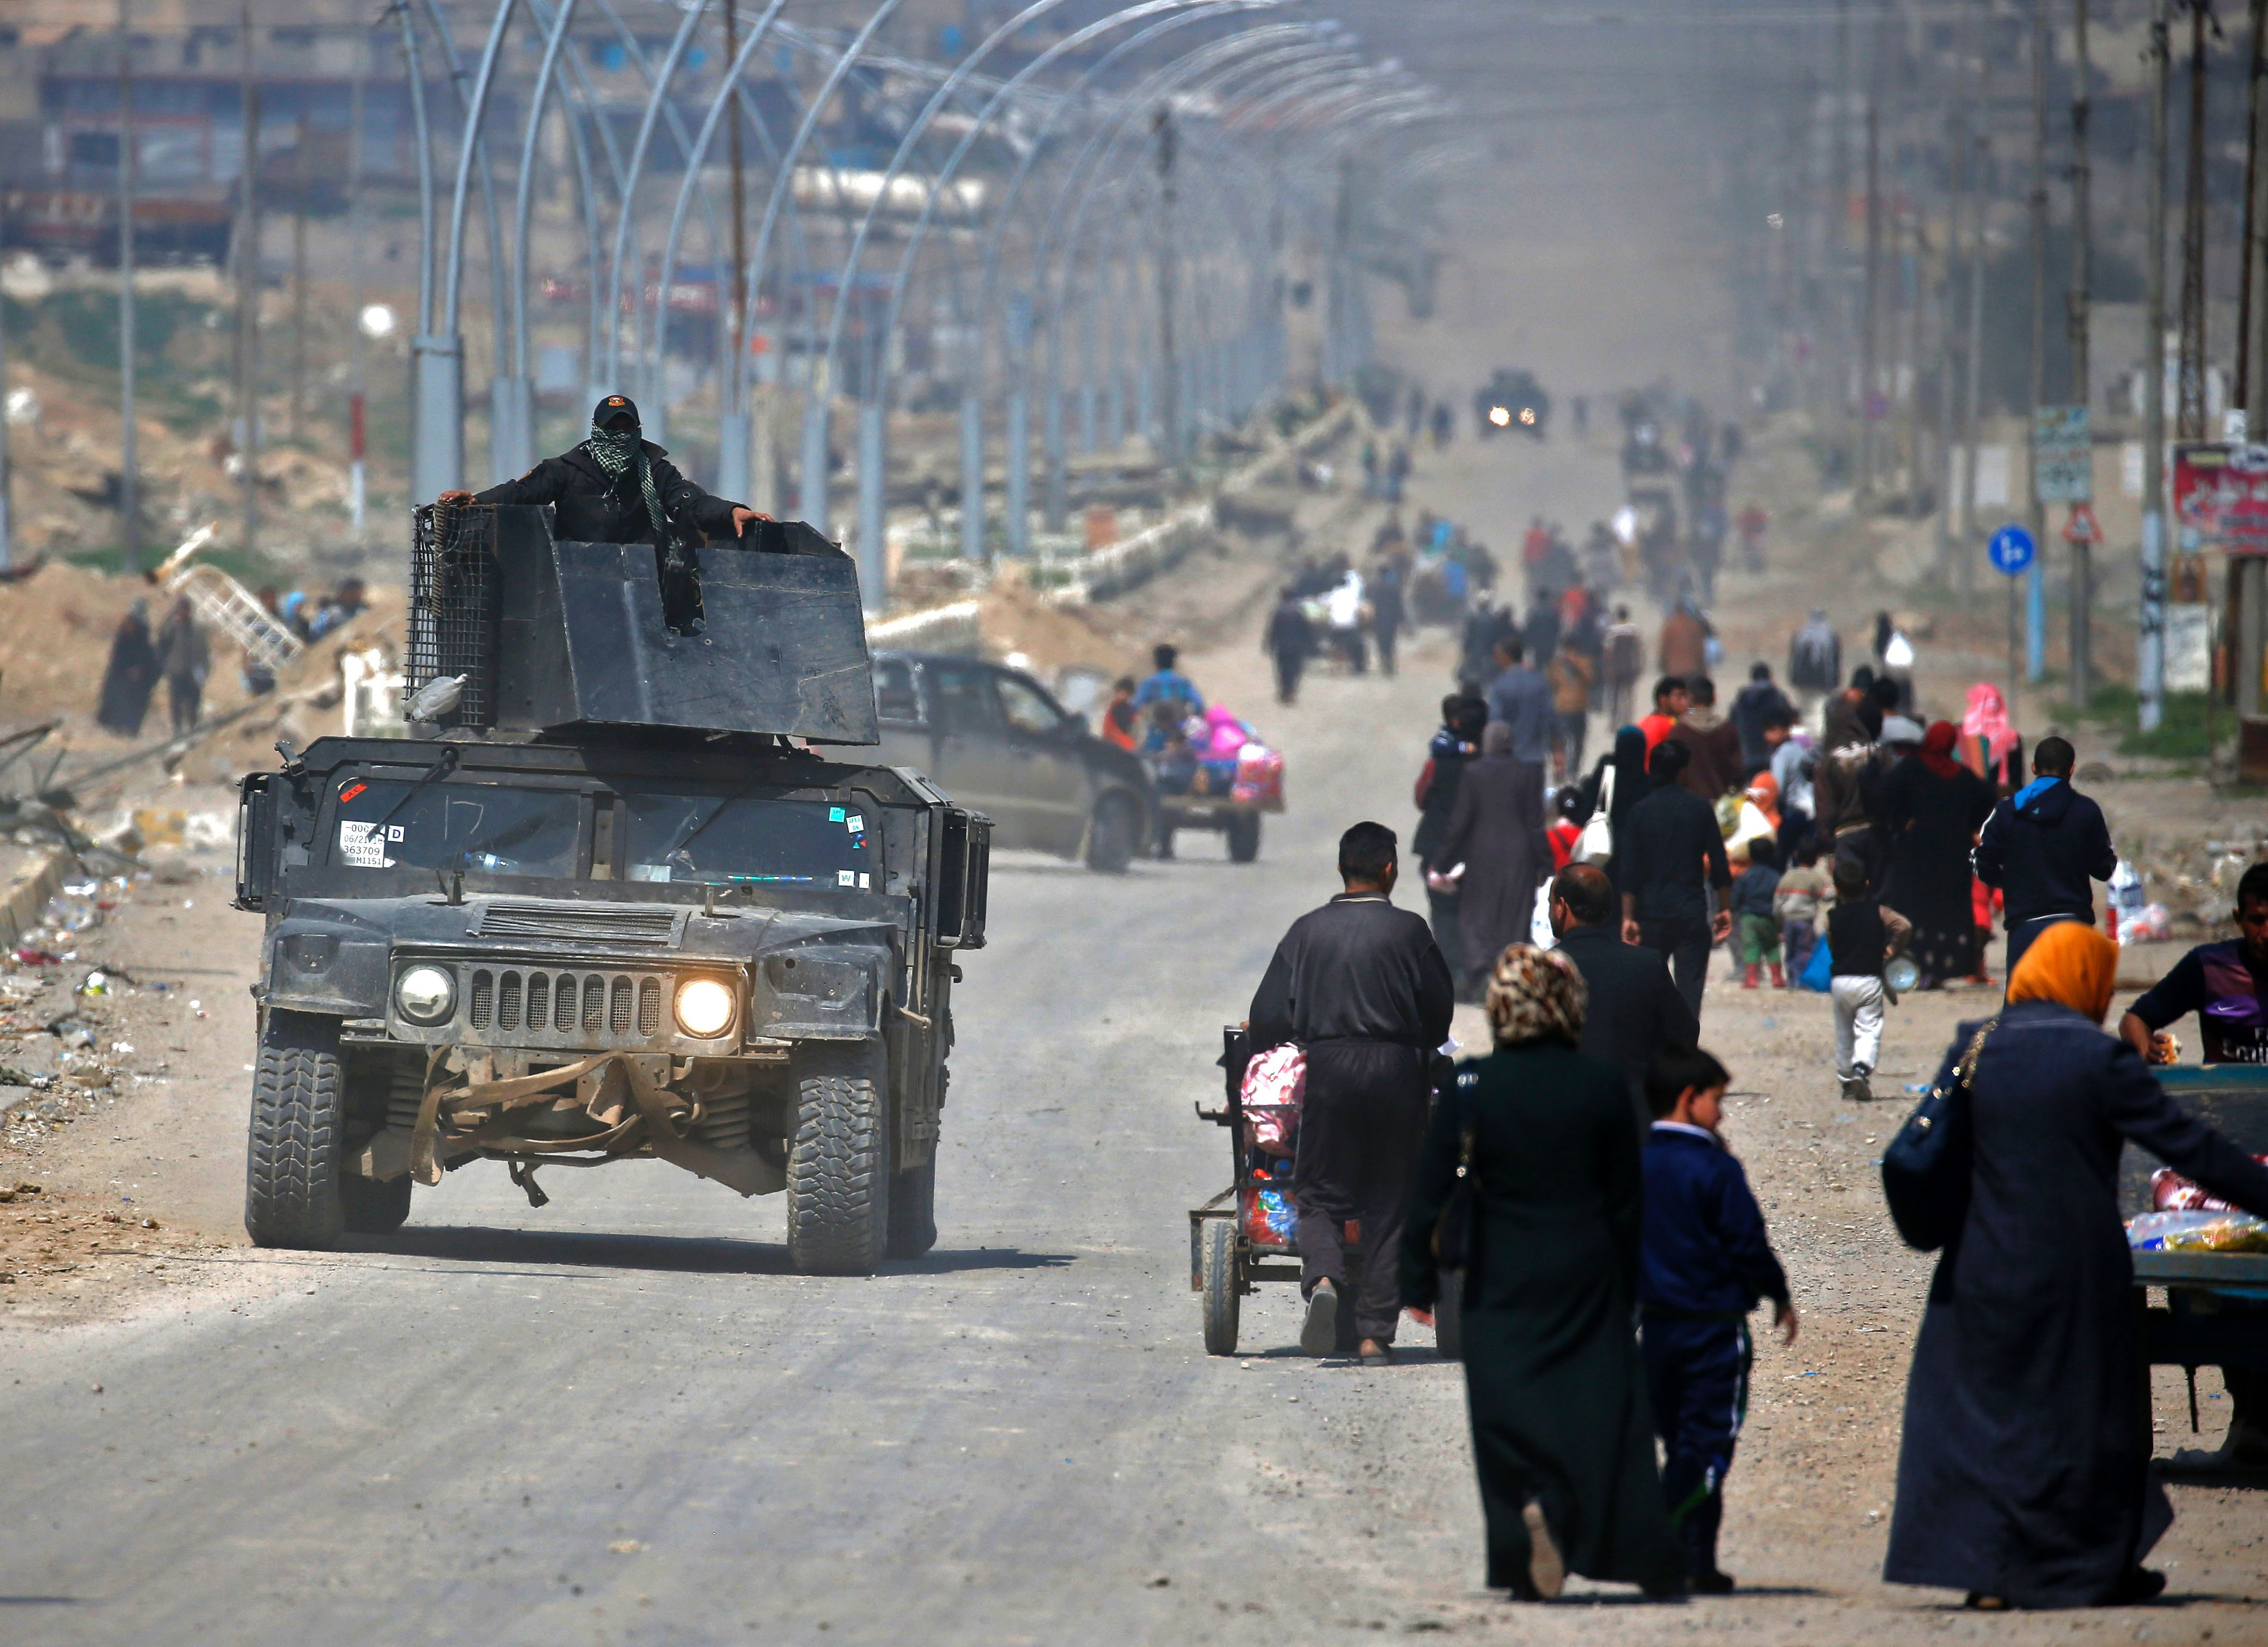 TOPSHOT - Iraqi security forces drive past civilians fleeing their homes in Mosul's old city on March 30, 2017, due to the ongoing battles between government forces and Islamic State (IS) group fighters. / AFP PHOTO / AHMAD GHARABLI / TT / kod 444